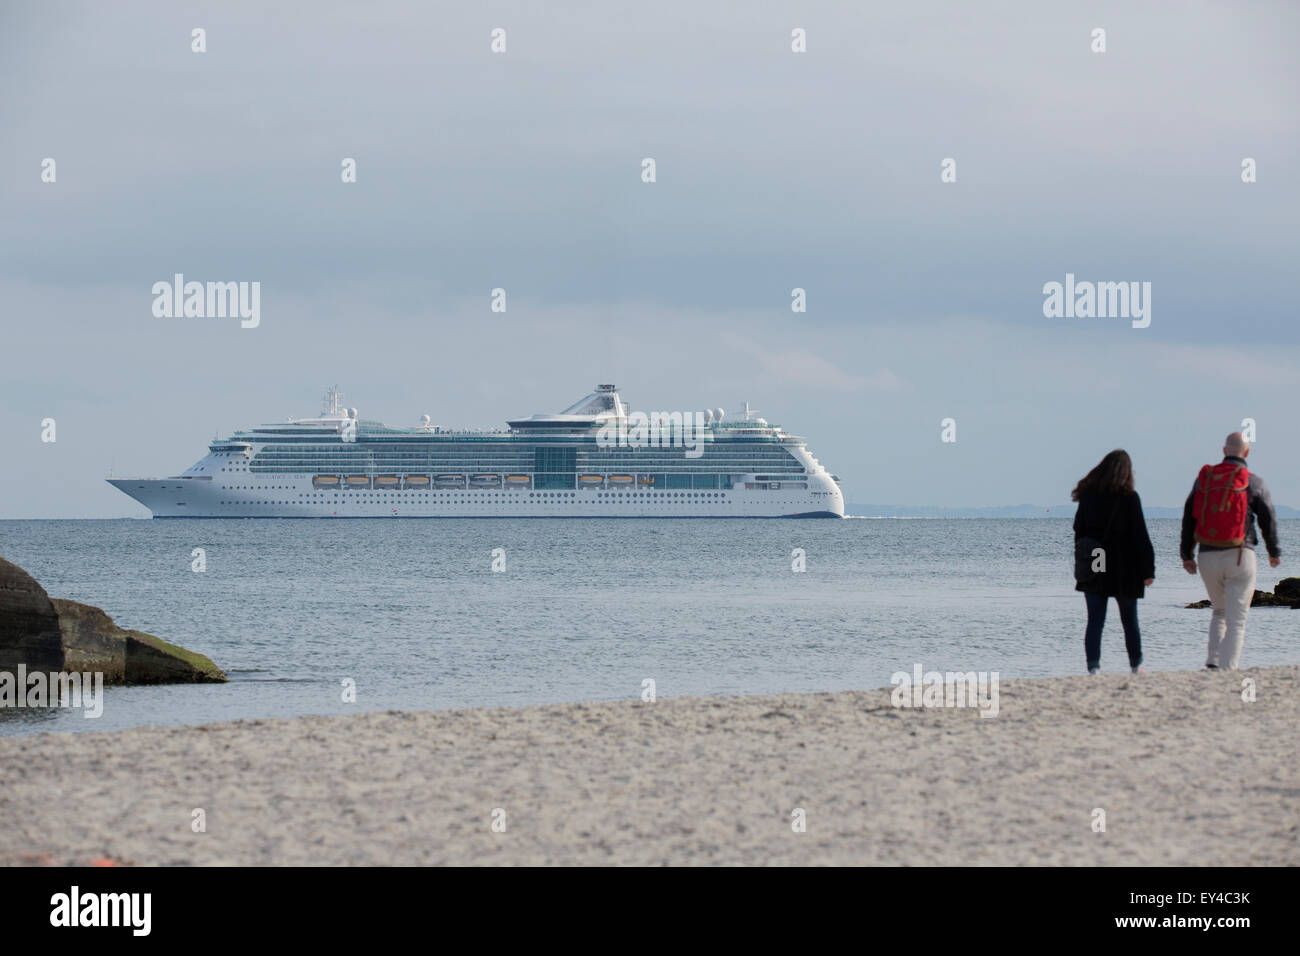 The cruise vessel Brilliance of the Seas at Skagen. - Stock Image